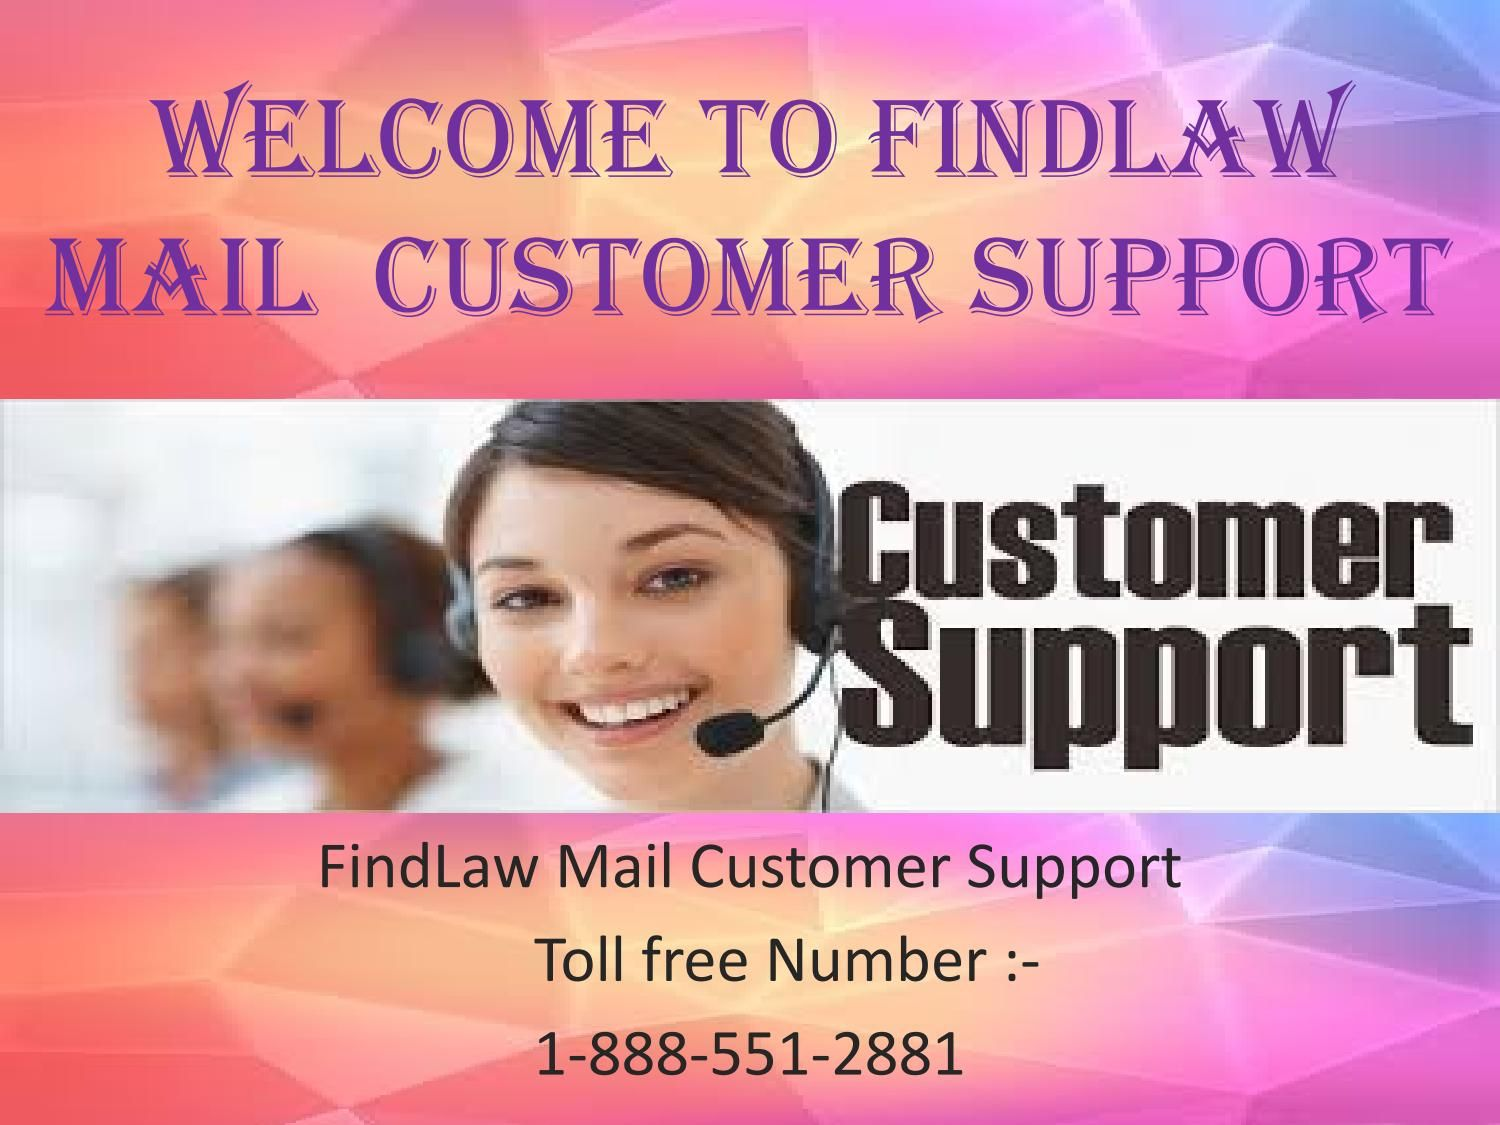 Findlaw mail customer support (With images) Online tech